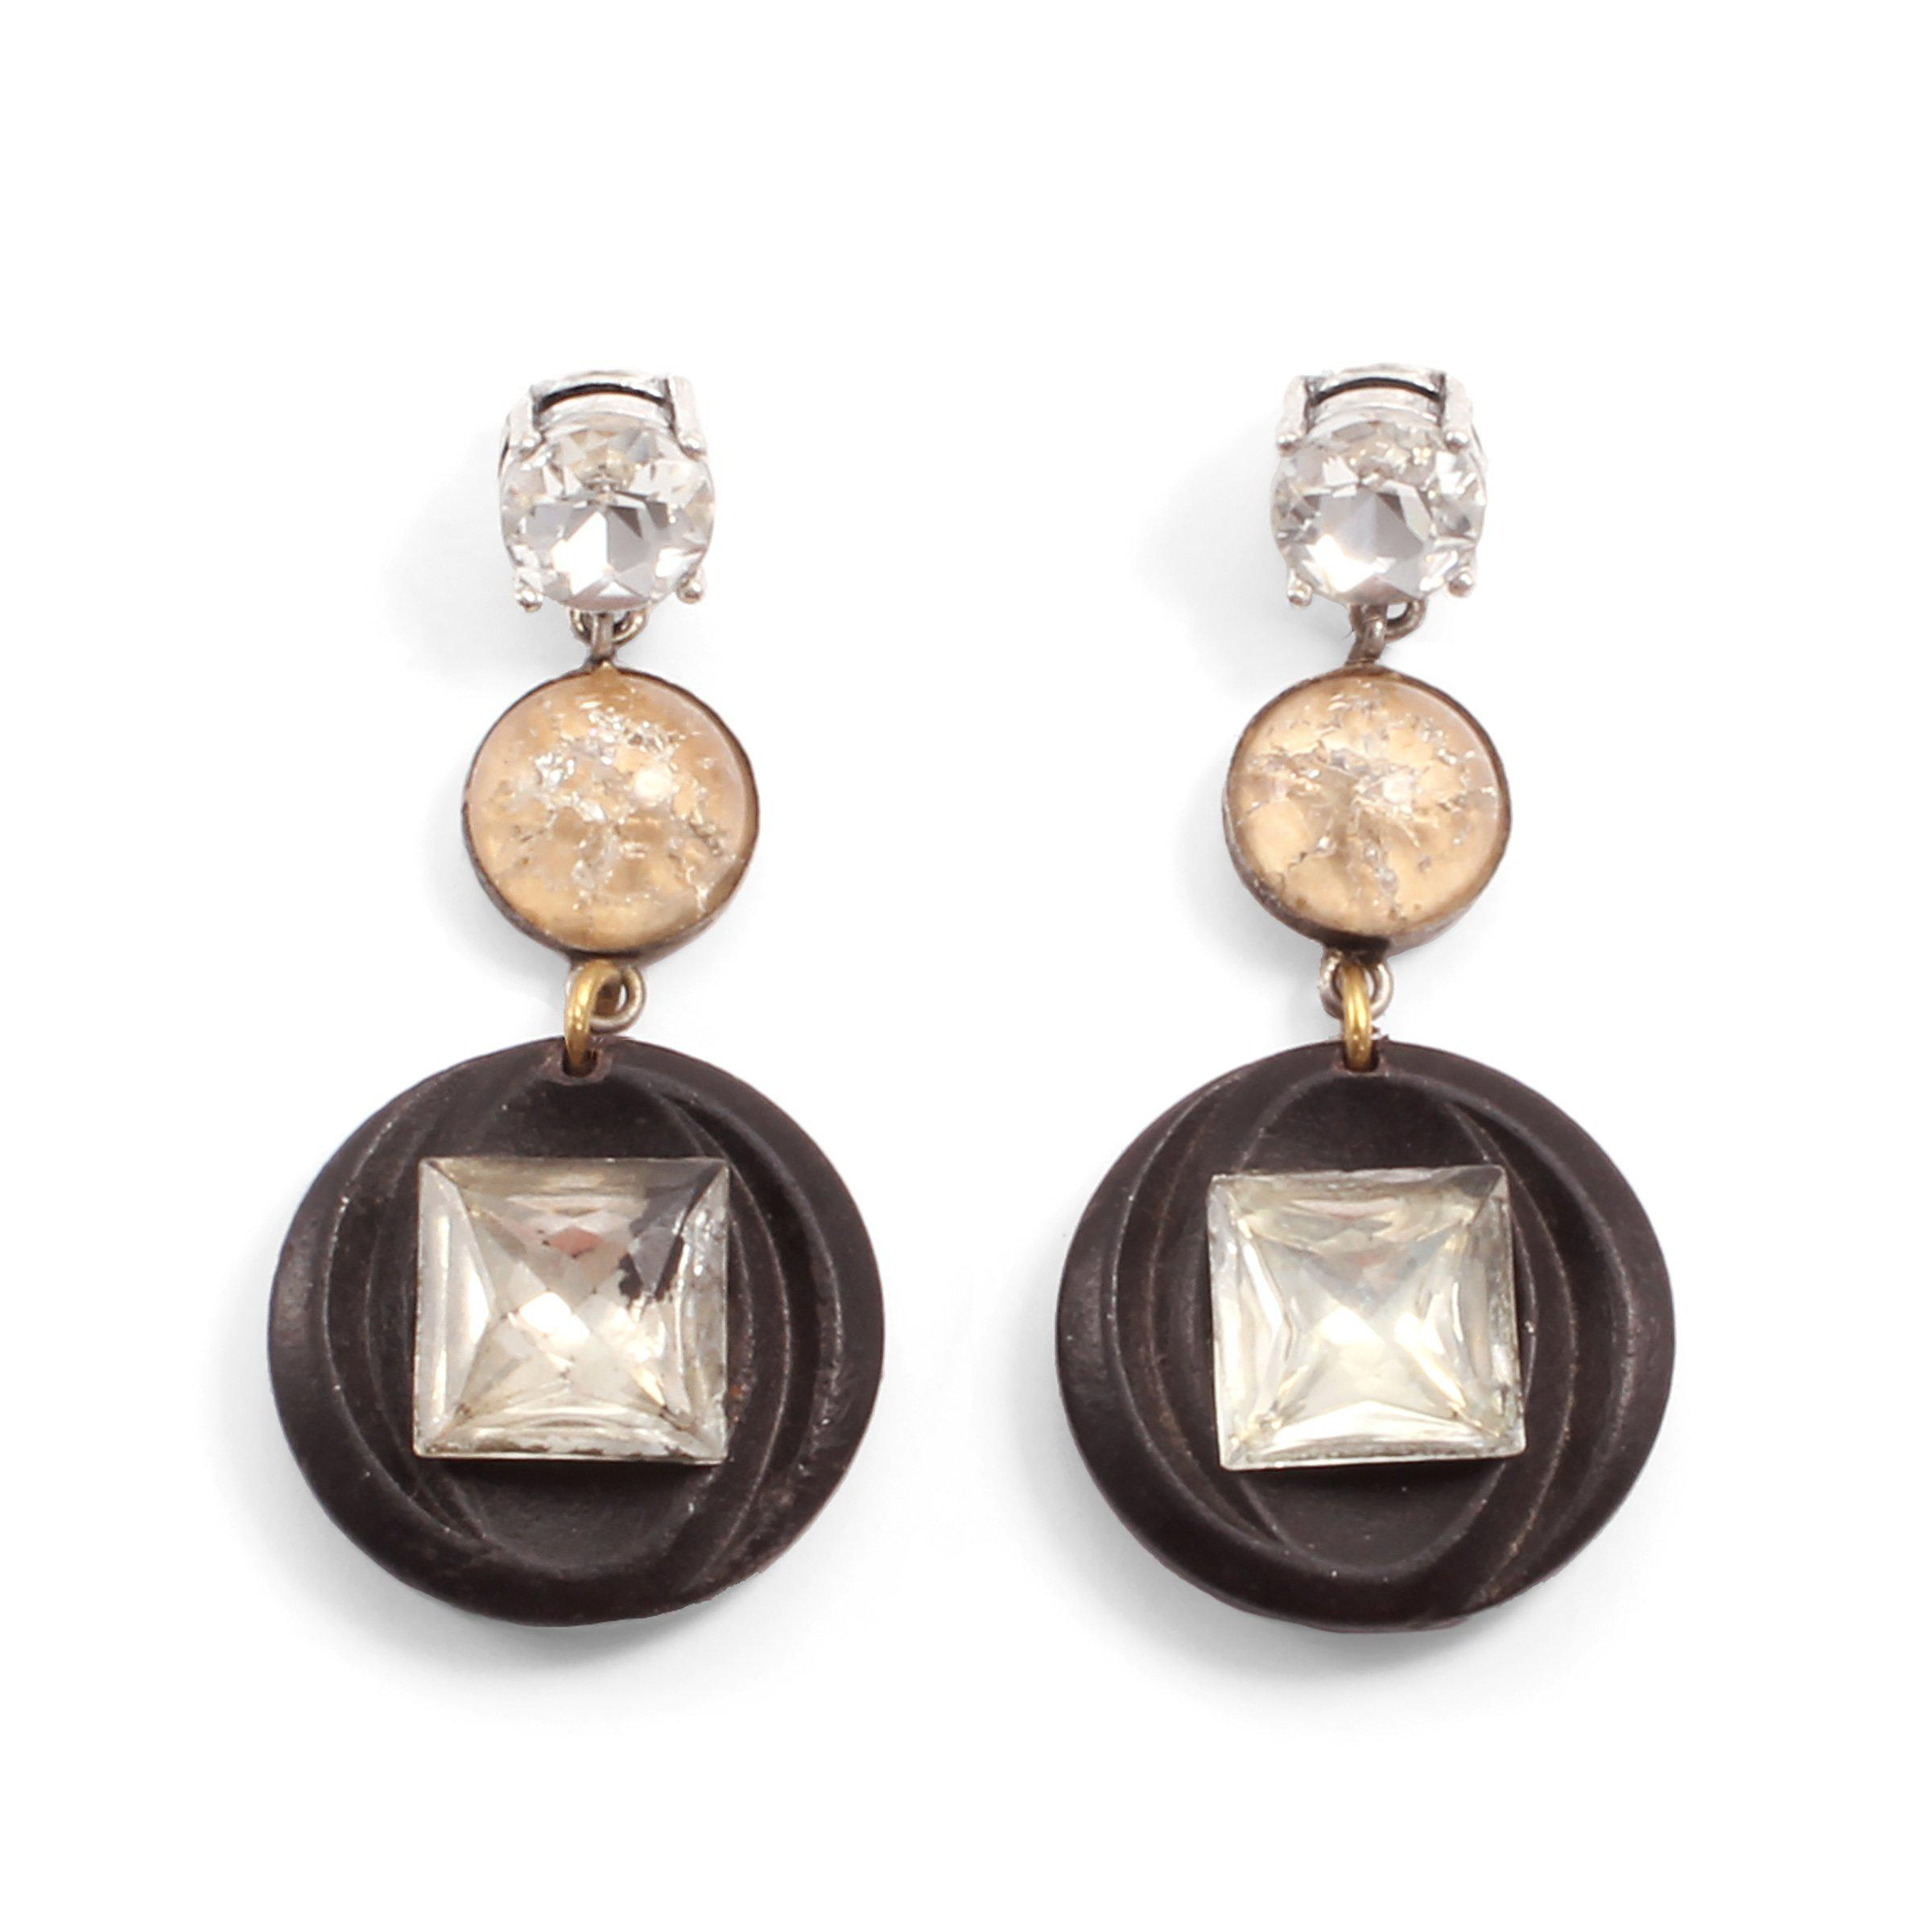 Will not vintage chocolate diamond earrings good topic